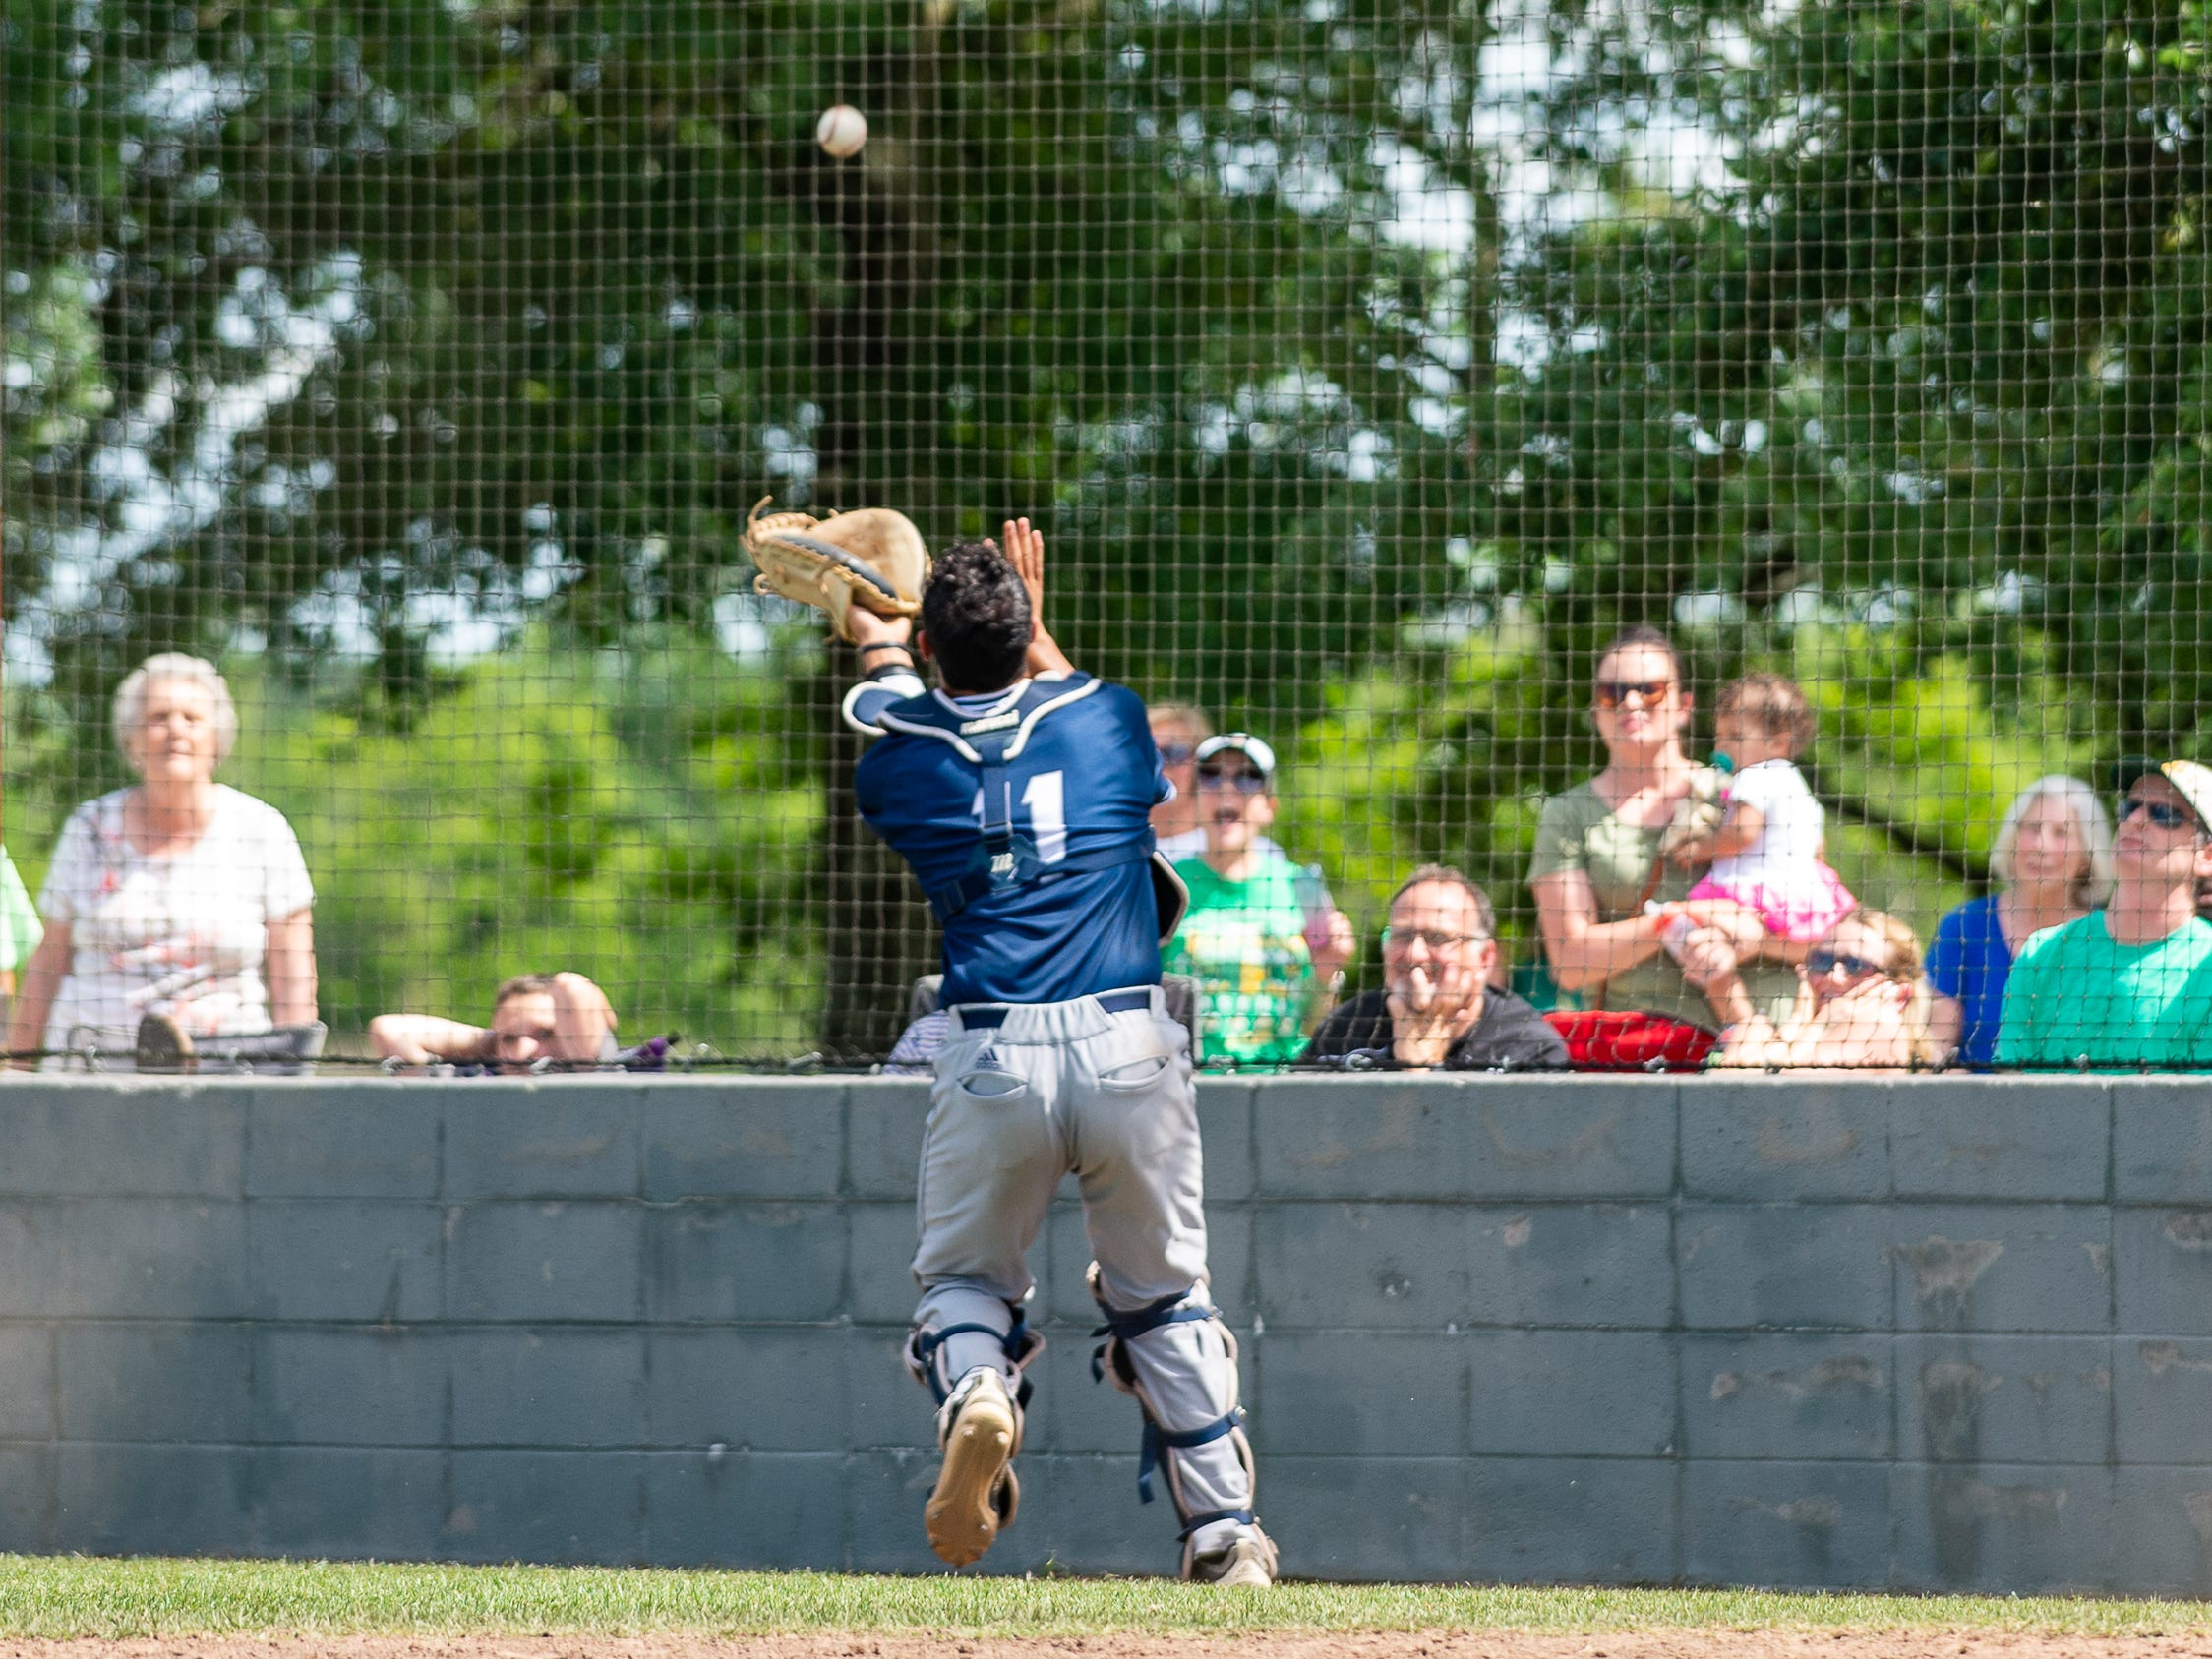 Catcher Austin Arceneaux makes a catch as the Ascension Blue Gators take on Holy Savior Menard in game two of the semi final round of the LHSAA playoffs. Sunday, May 5, 2019.